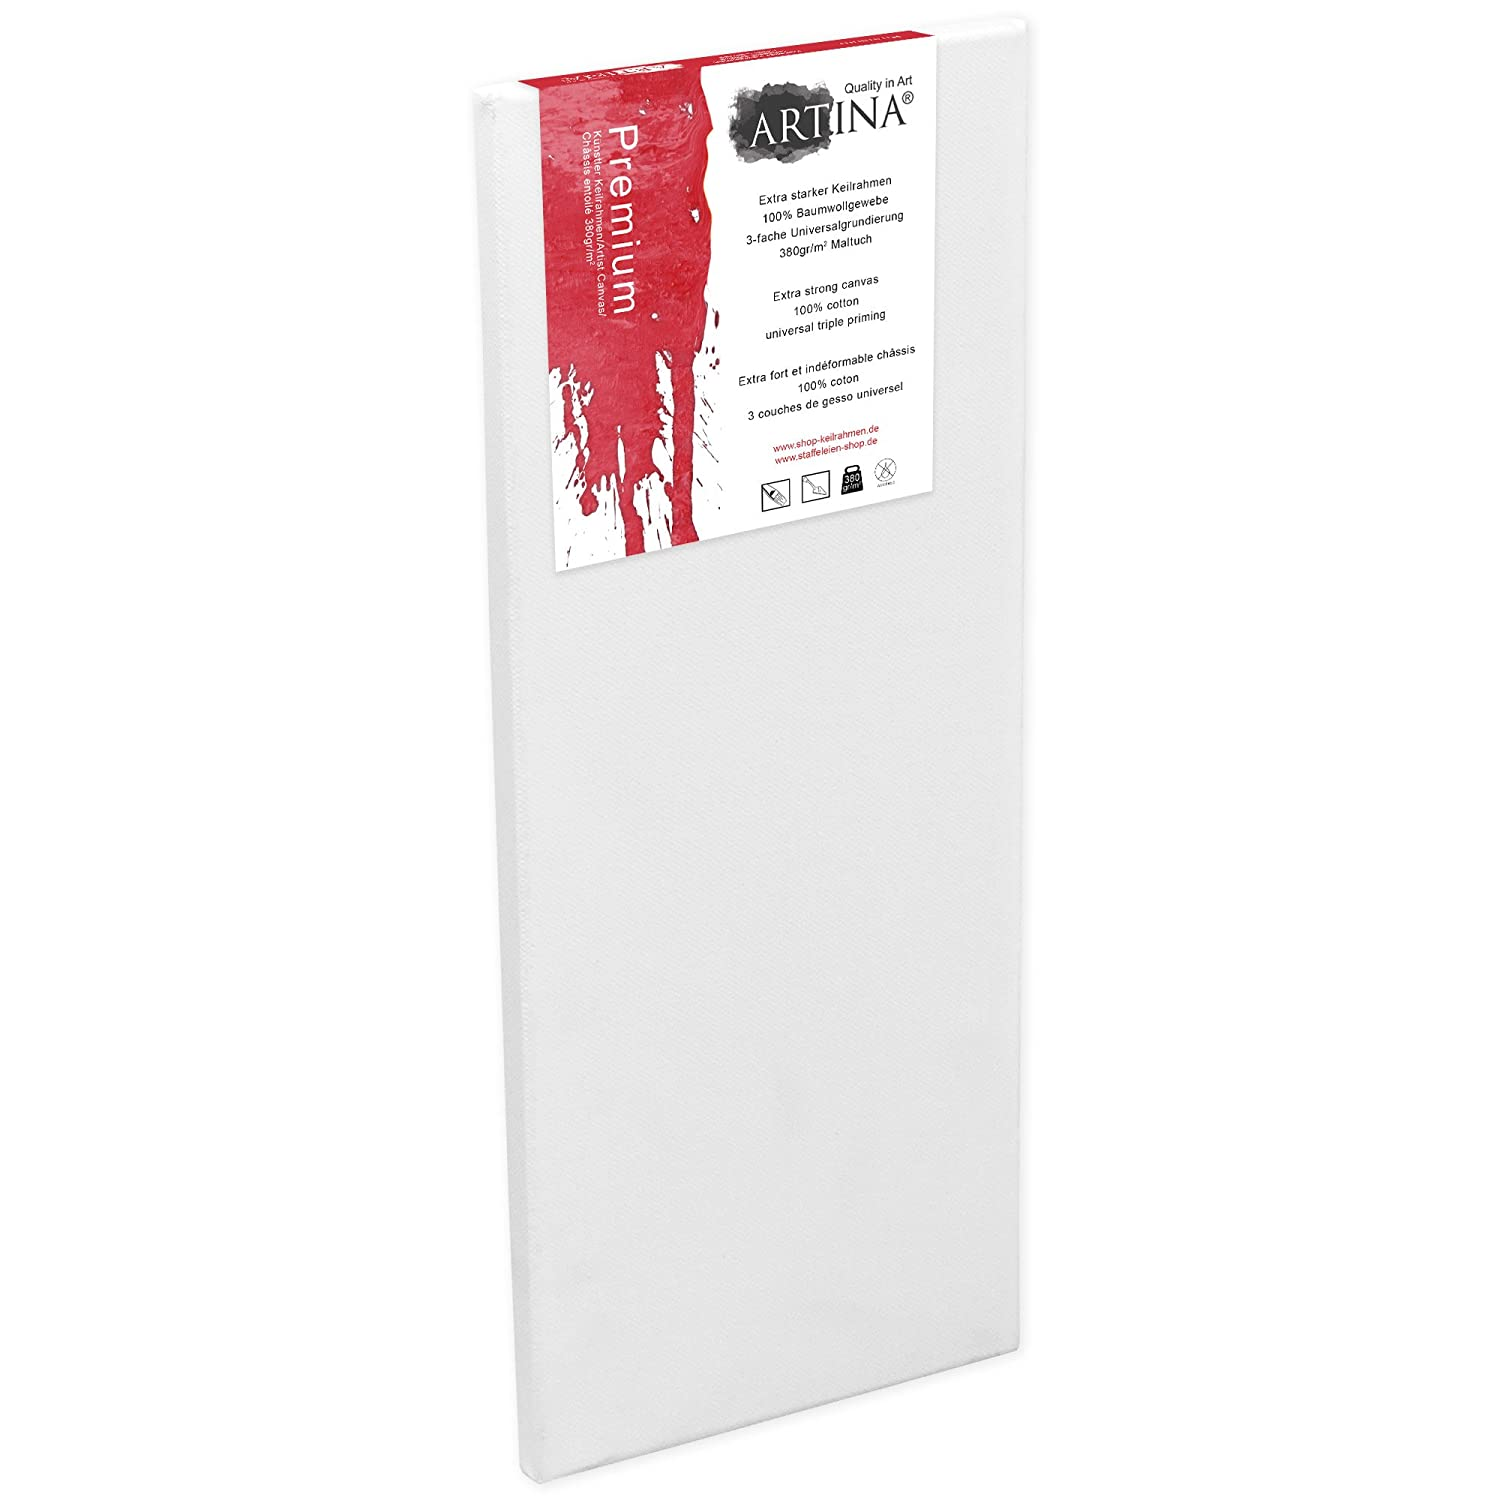 Artina Art Canvases 40 x 120 cm Stretched & Triple Primed Premium Quality Artist Blank Canvas Bulk 16 x 47 Inch